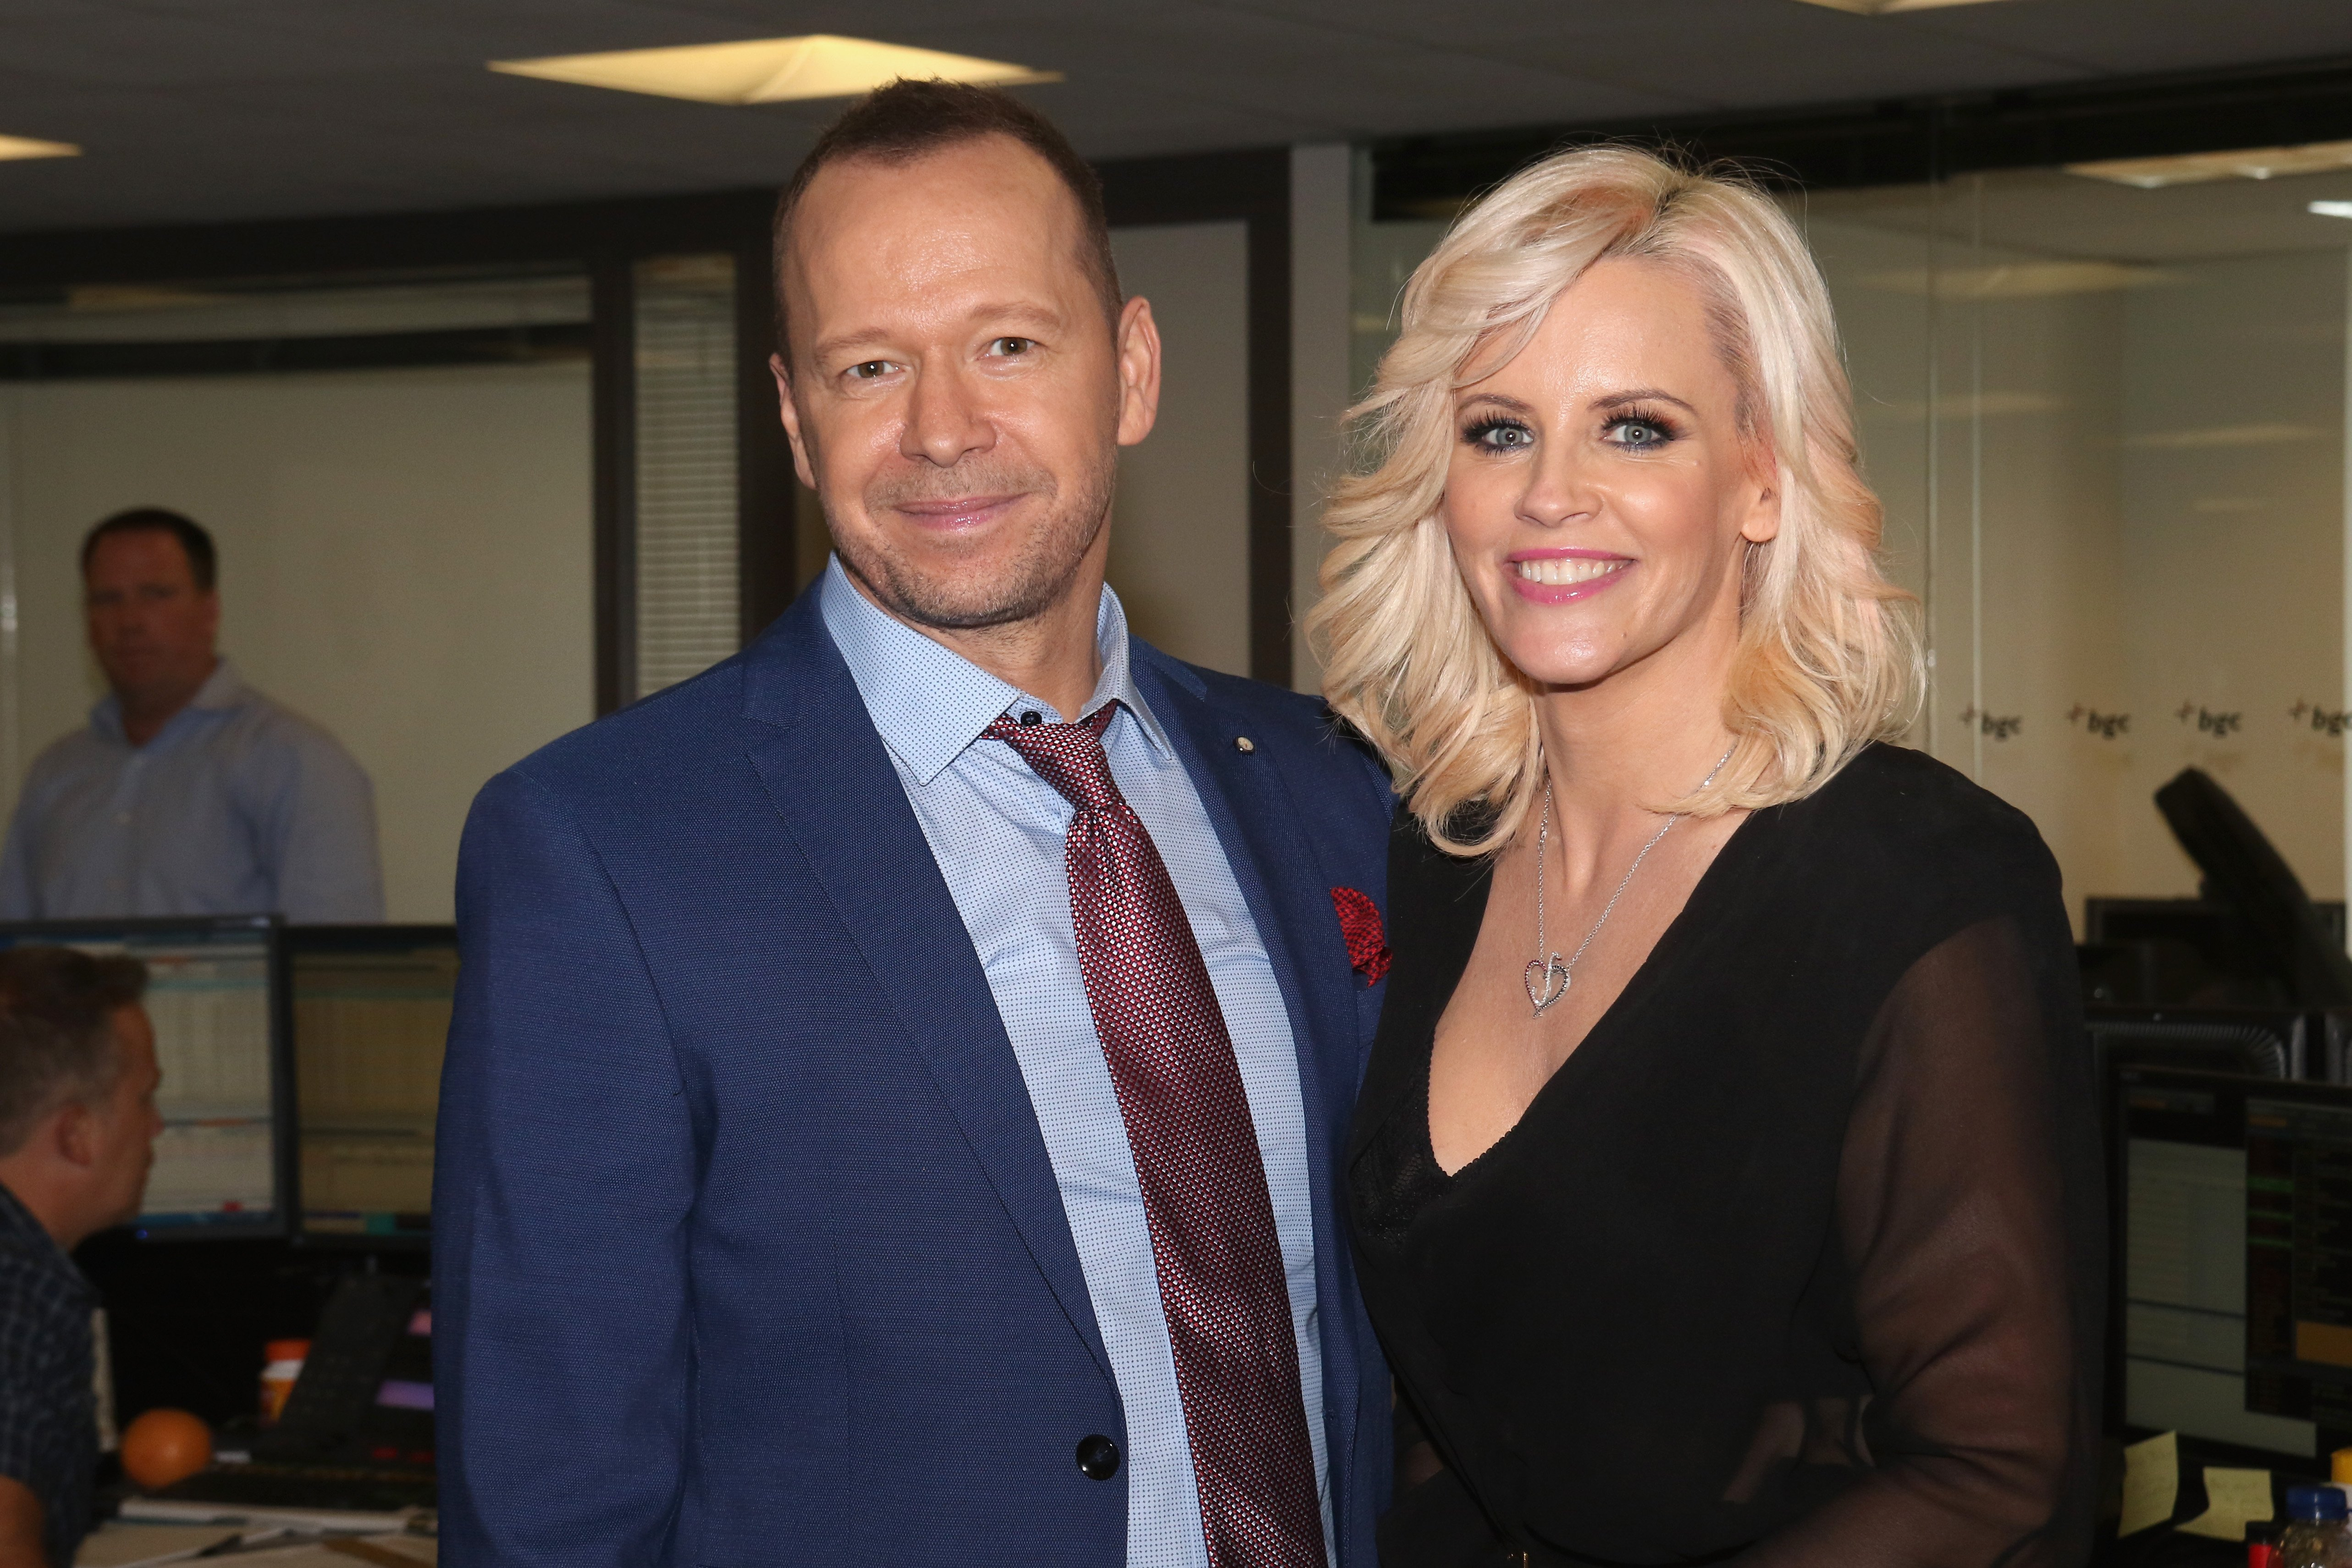 Donnie Wahlberg and Jenny McCarthy attend Annual Charity Day hosted by Cantor Fitzgerald and BGC at BGC Partners, INC on September 11, 2015, in New York City. | Source: Getty Images.